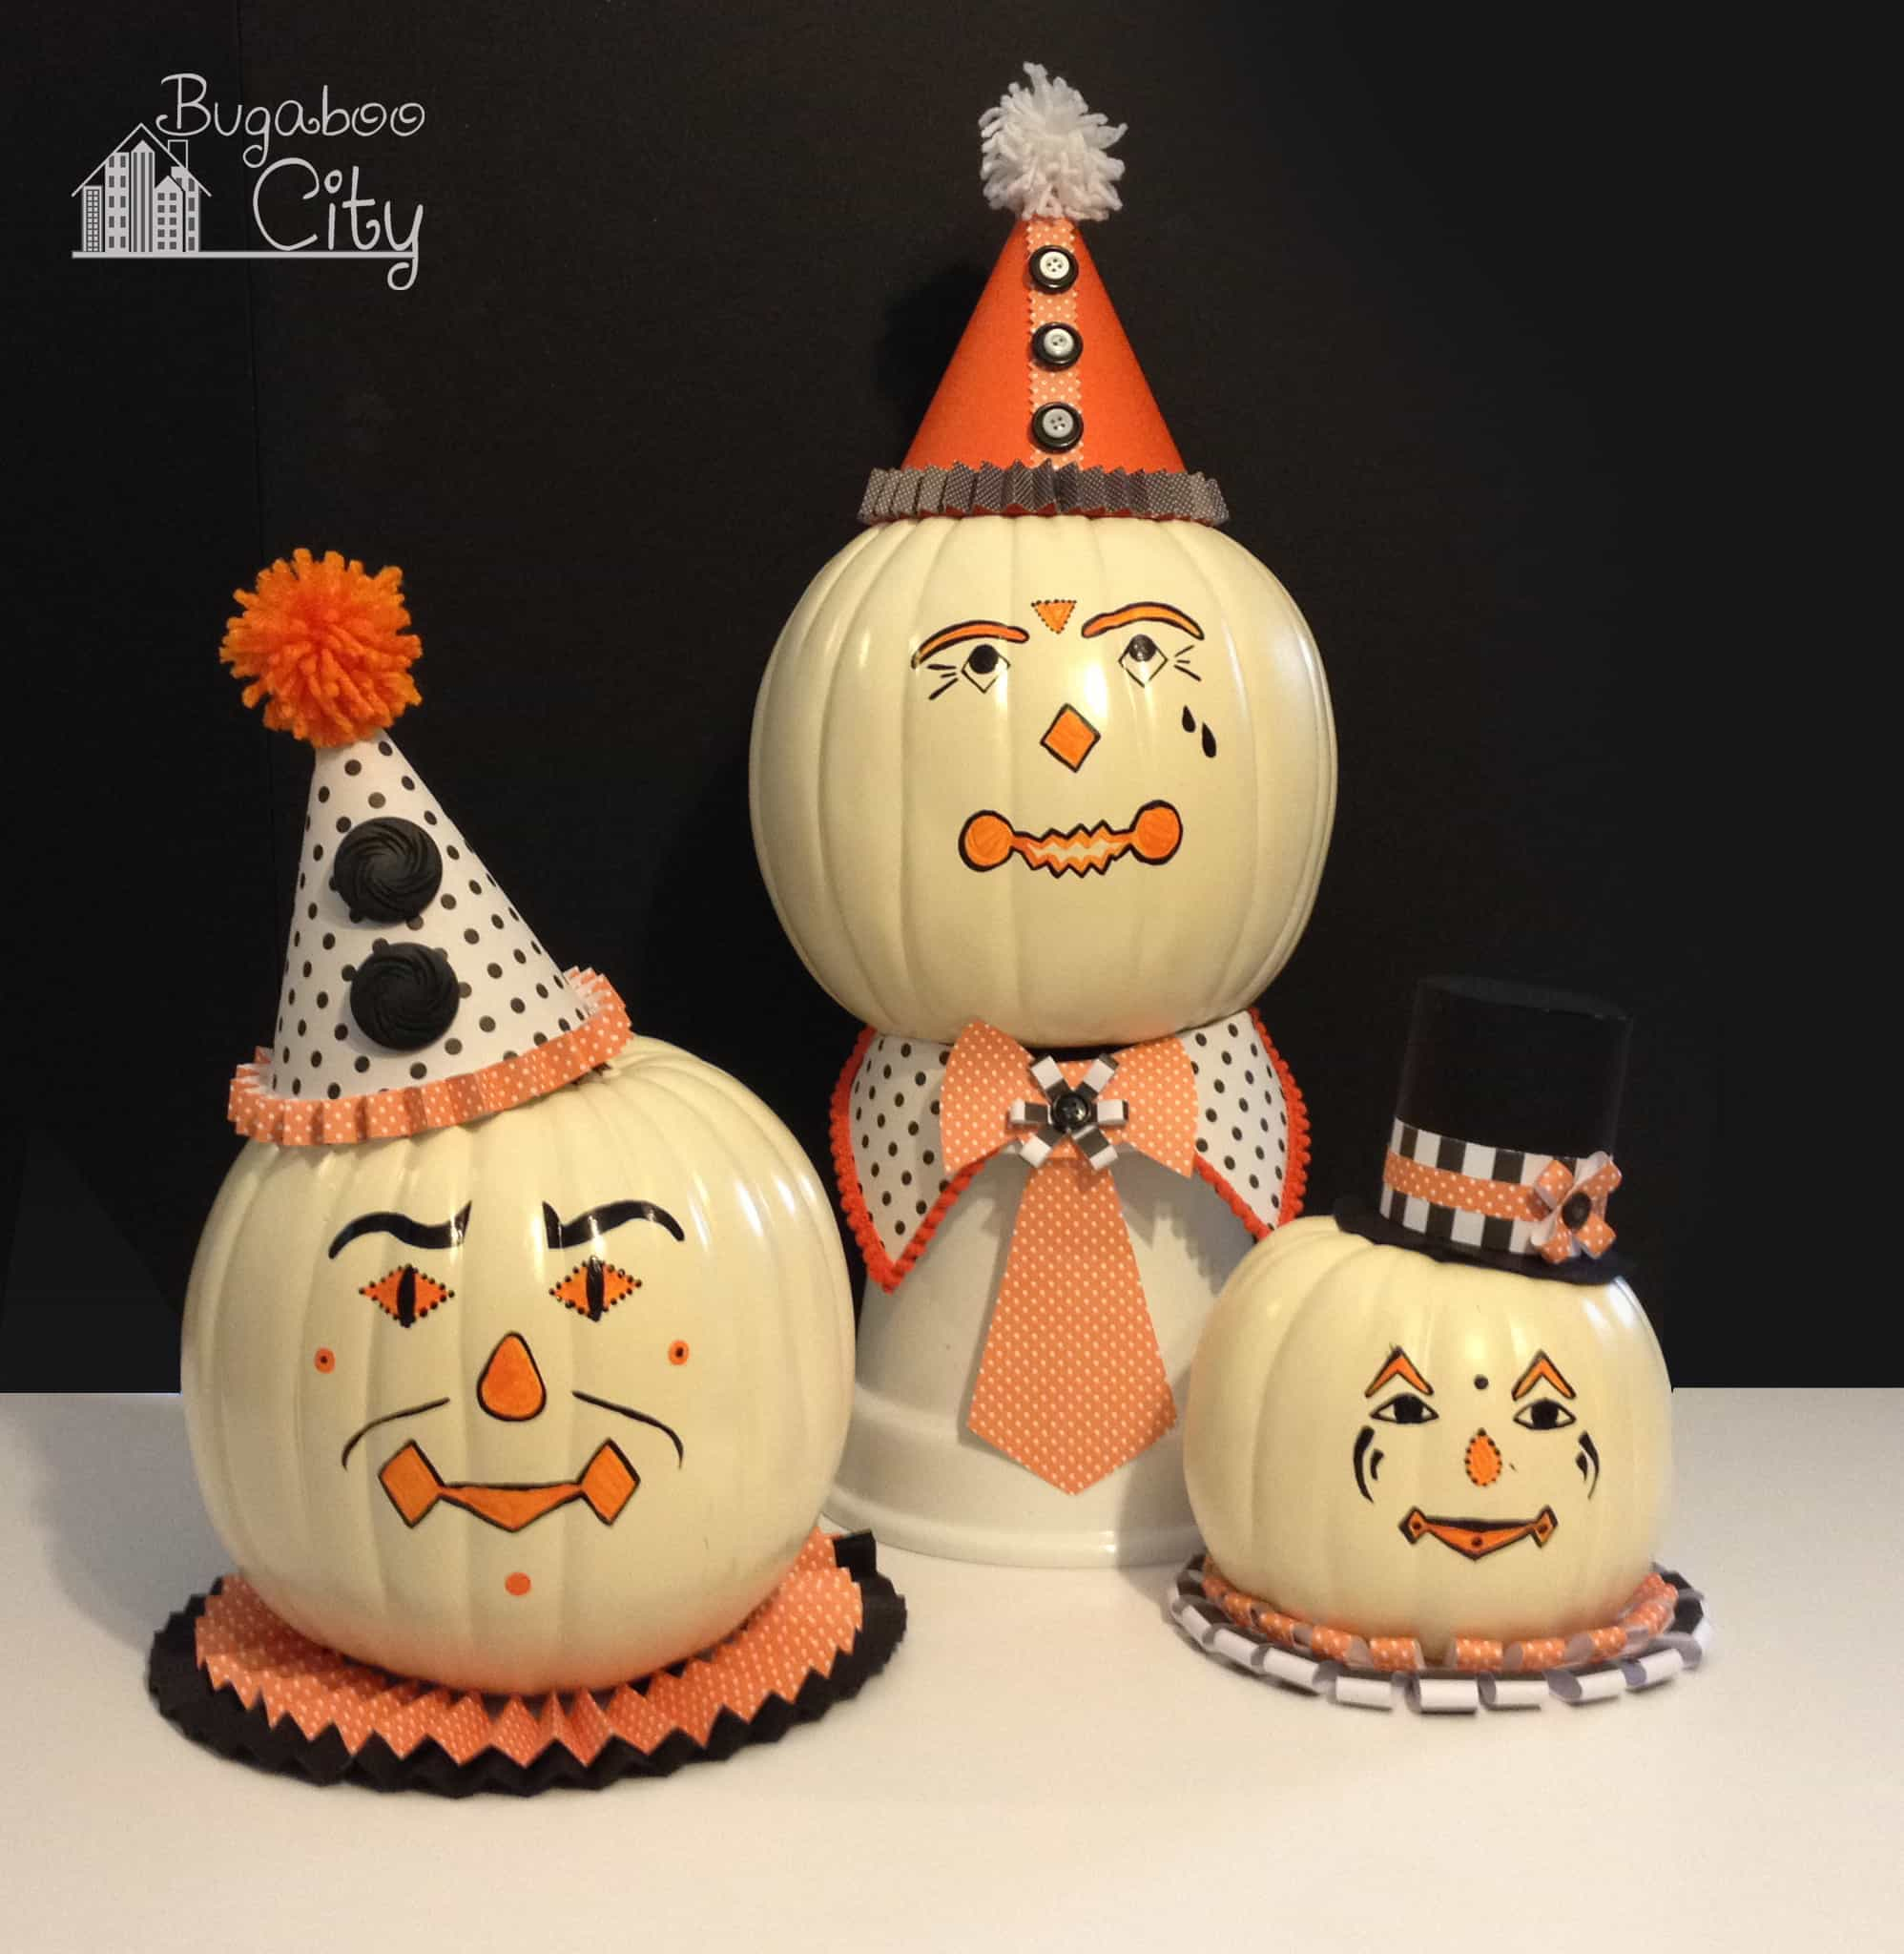 Diy Vintage Clown Pumpkins Decorating With Paper And